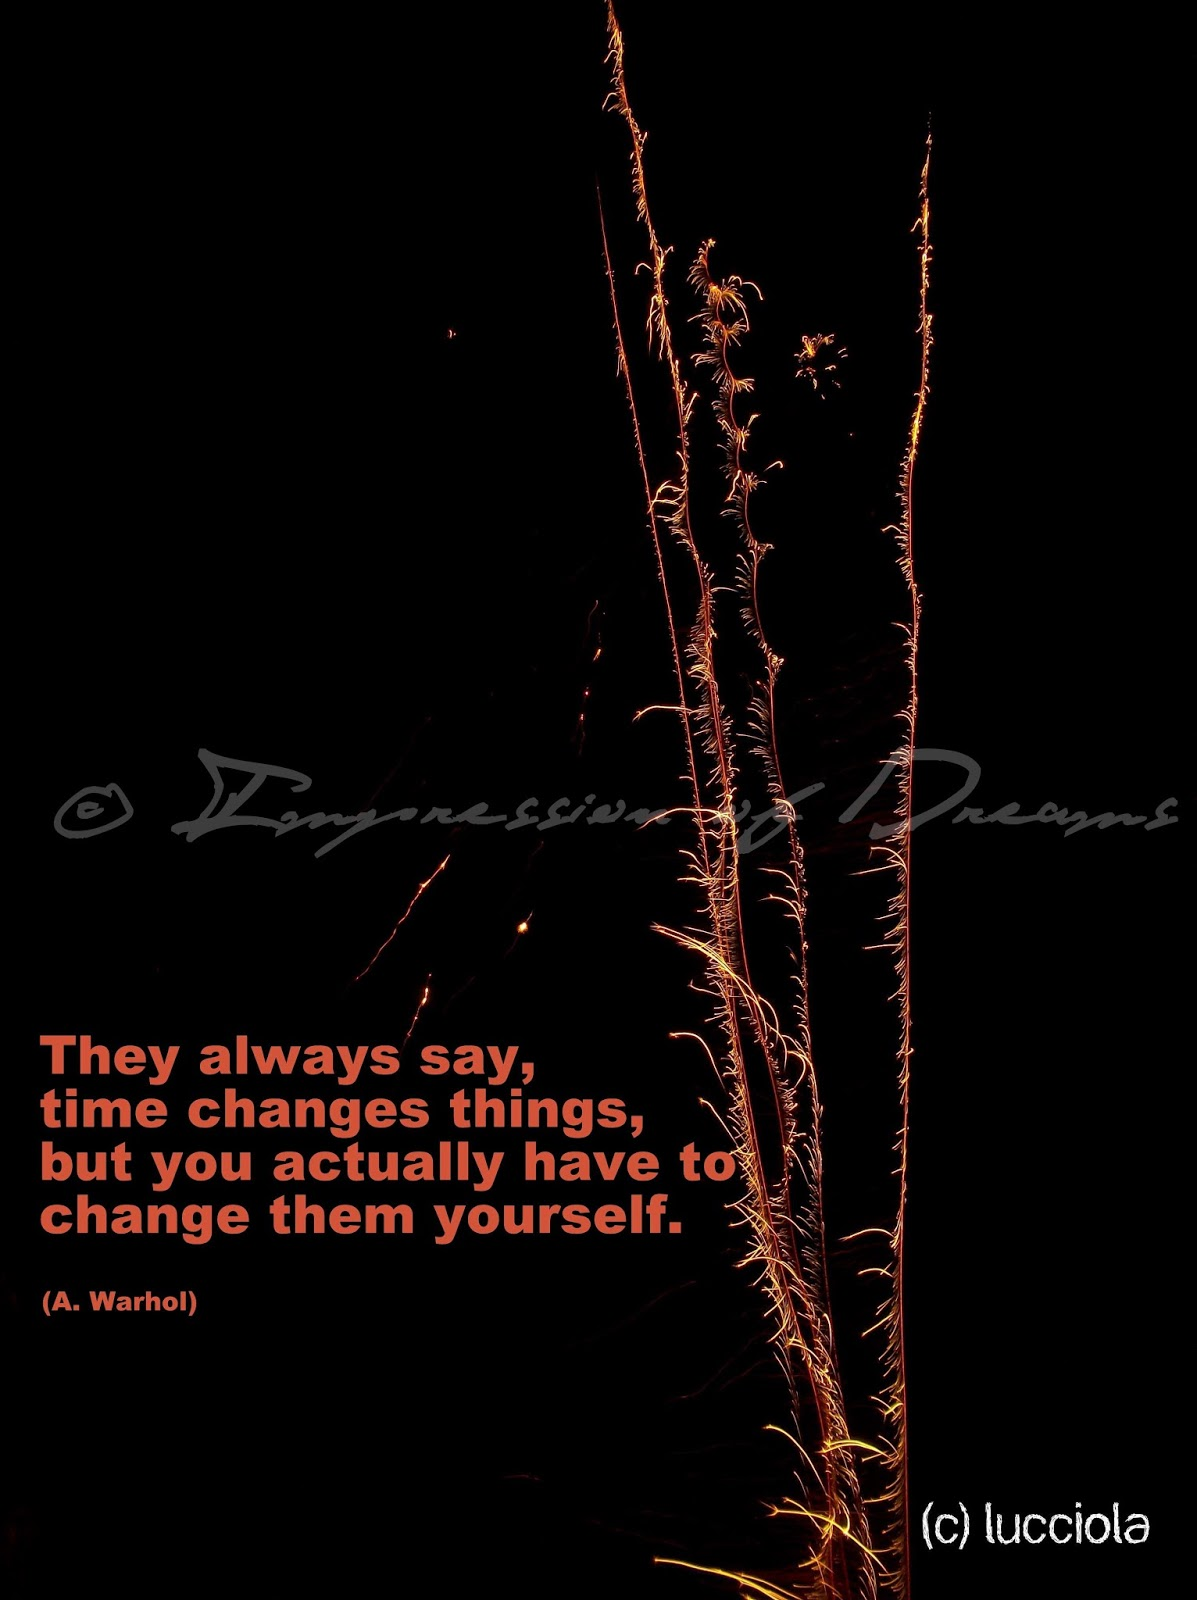 They always say, time changes things, but you actually have to change them yourself